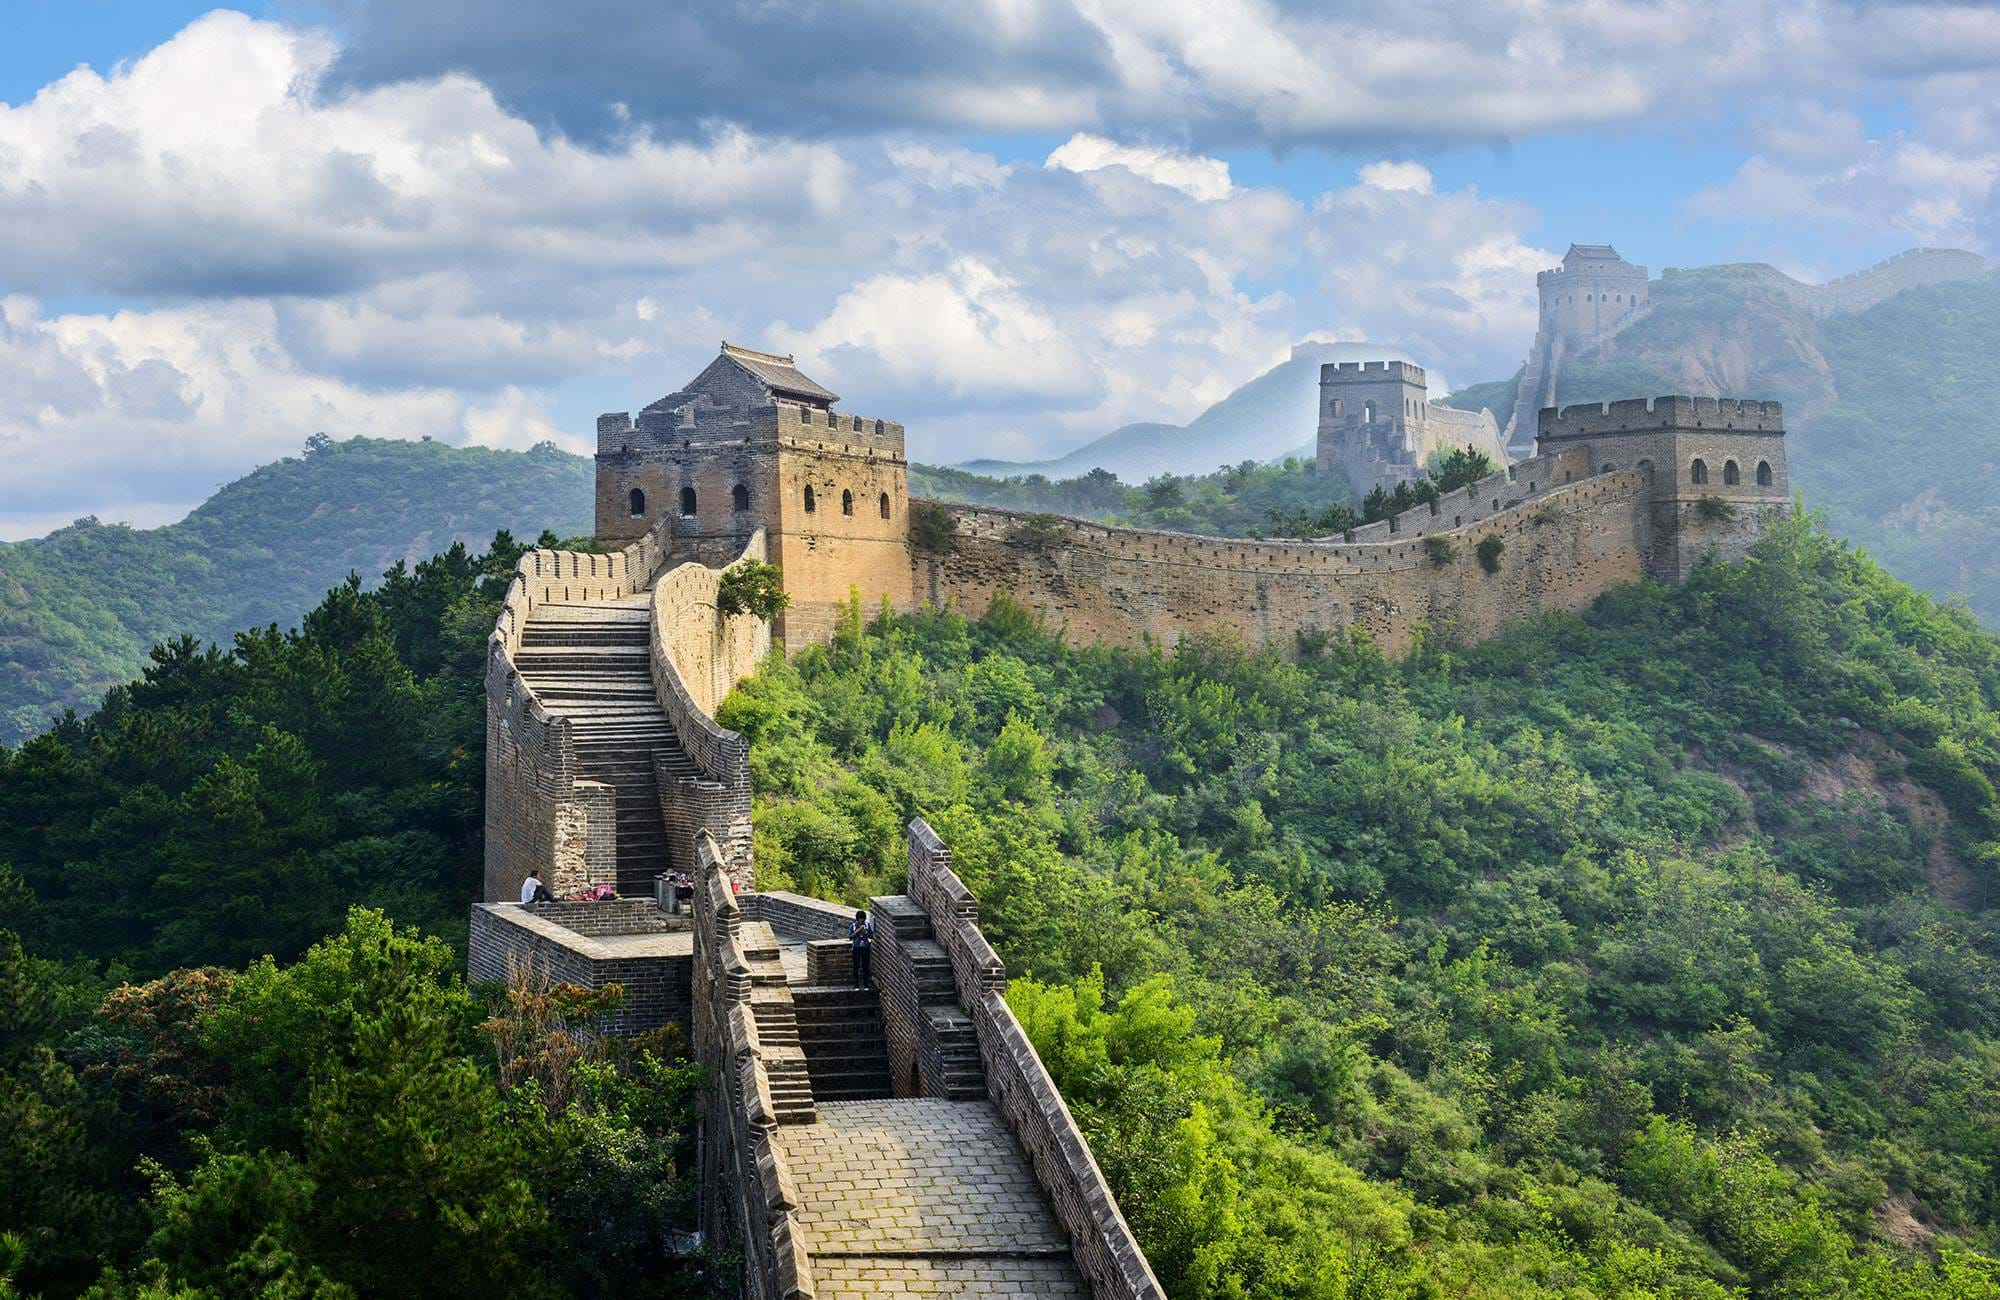 beijing-china-the-great-wall-green-surroundings